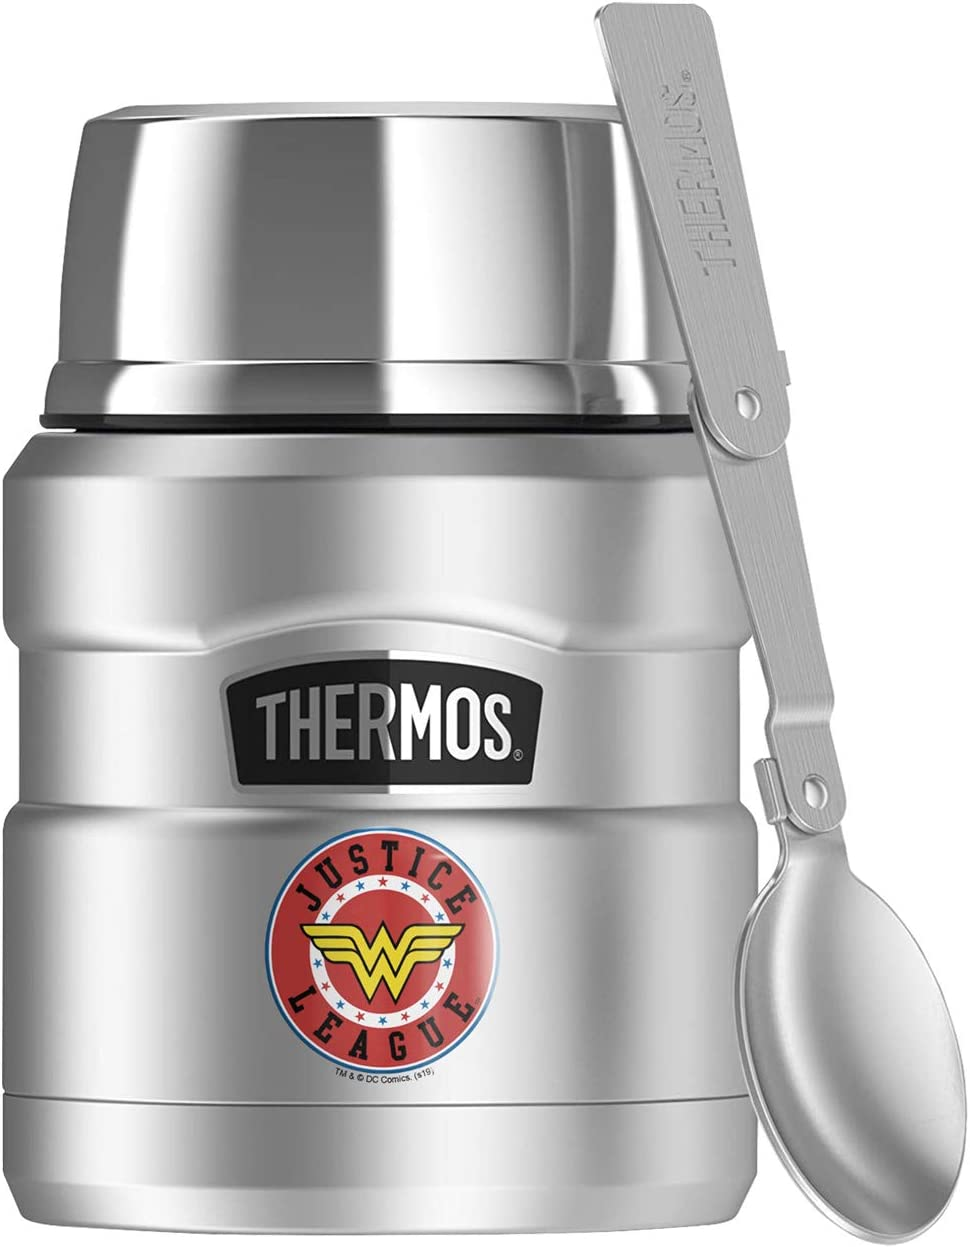 Wonder Woman Wonder Woman Athletic Logo, THERMOS STAINLESS KING Stainless Steel Food Jar with Folding Spoon, Vacuum insulated & Double Wall, 16oz